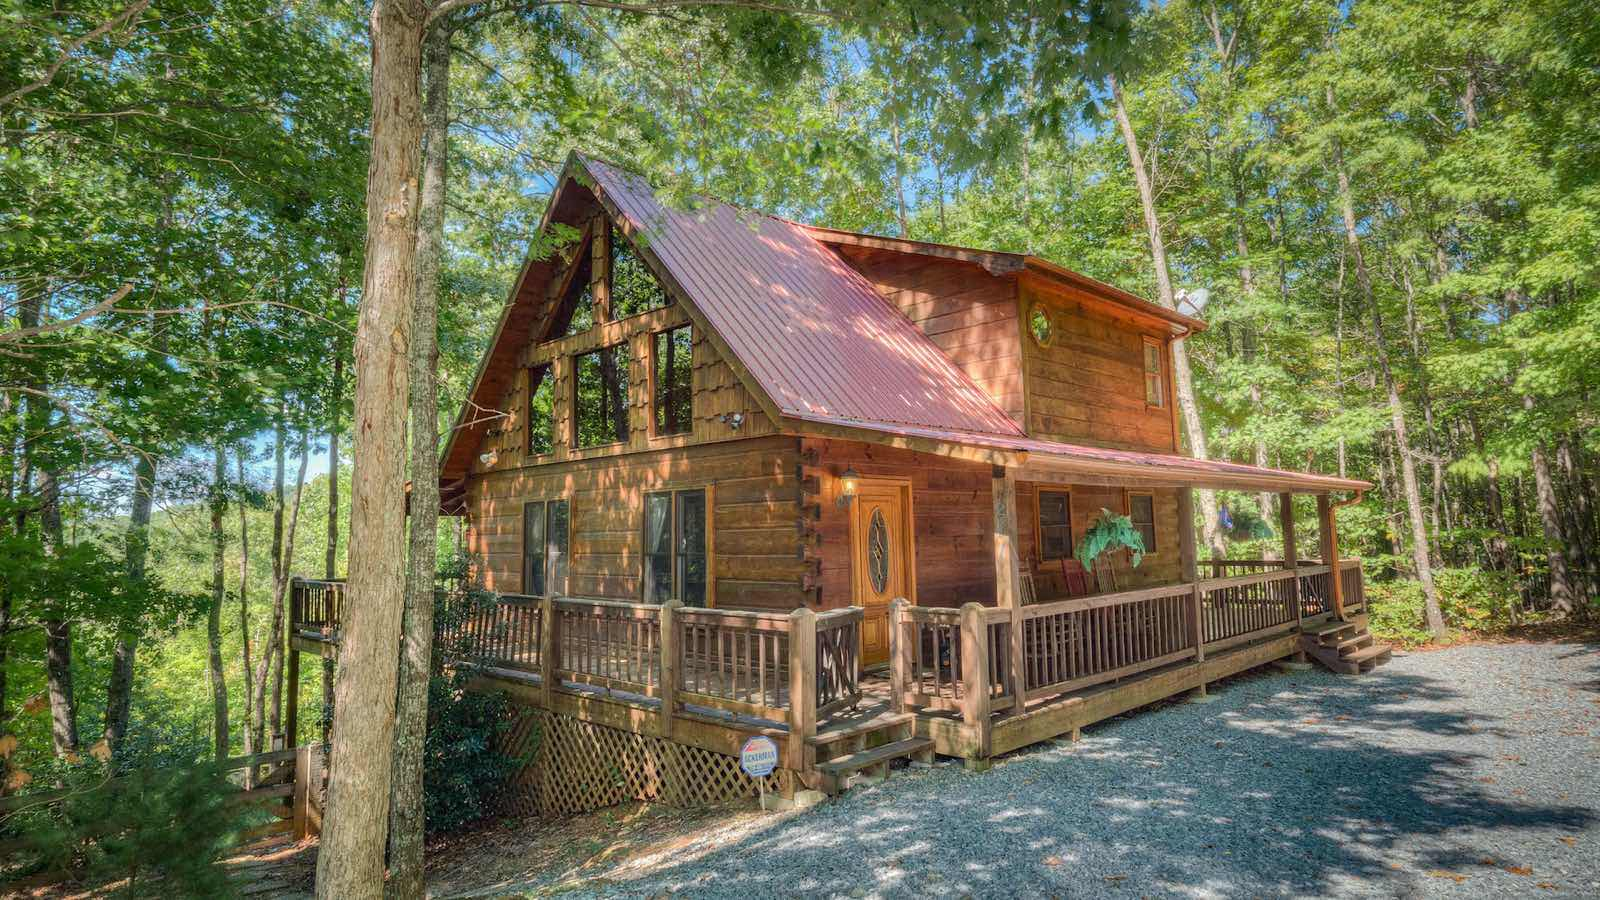 blog acquires weekend cabins foster real rentals taylor made deep estate long creek cabin vacation